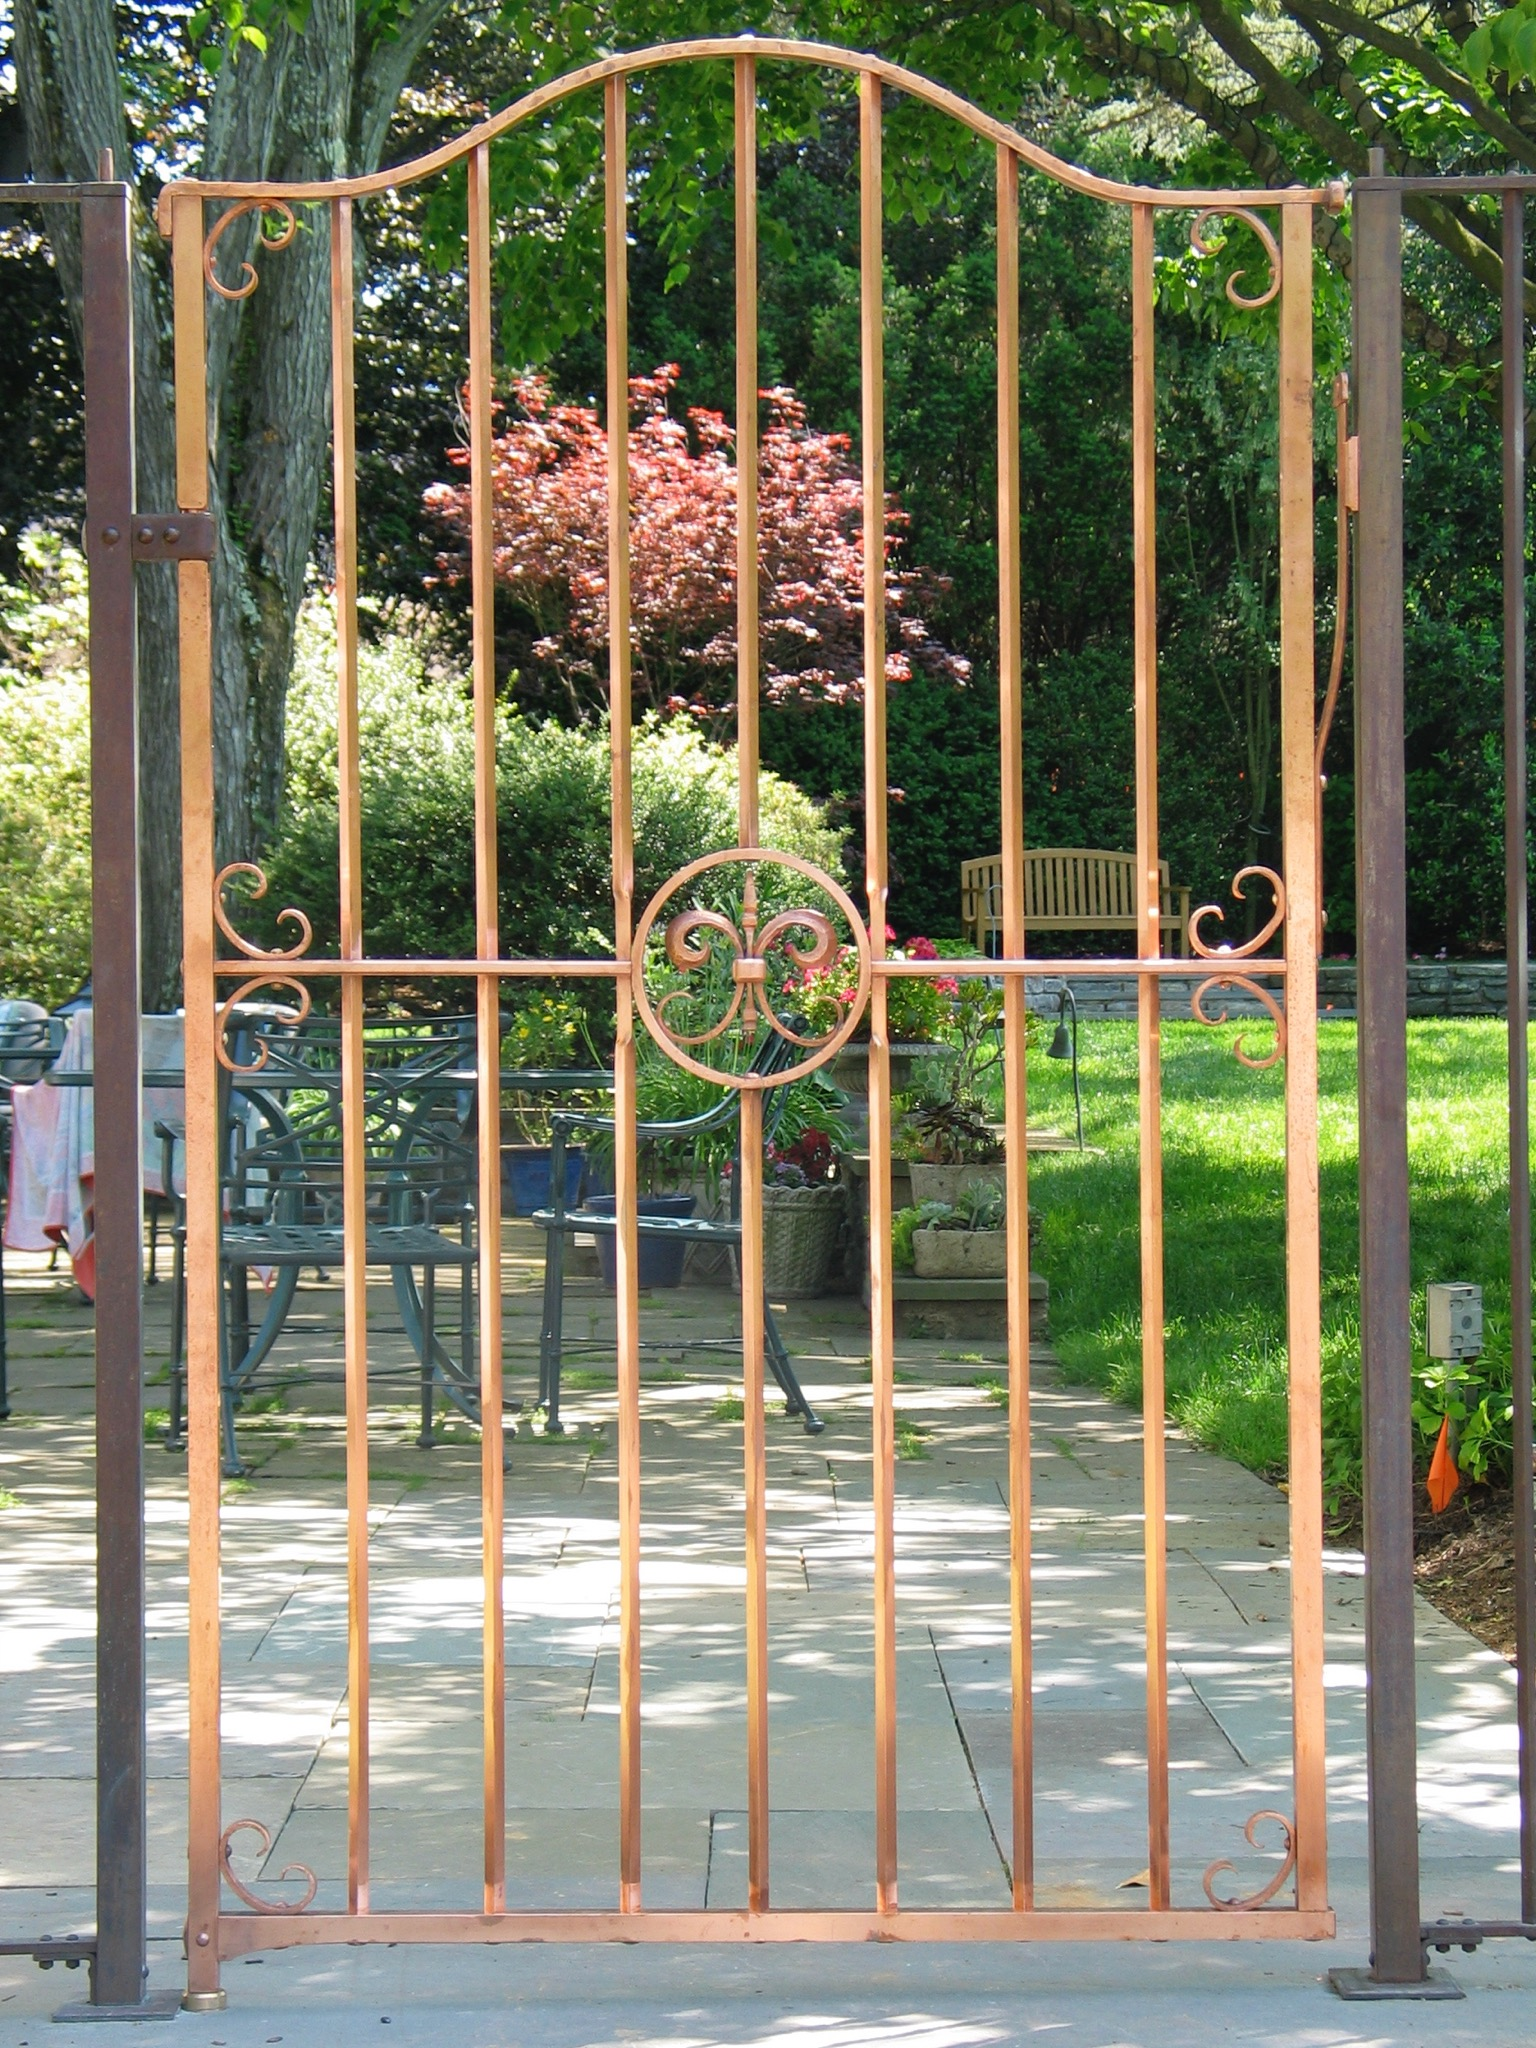 20. Copper Entry Gate